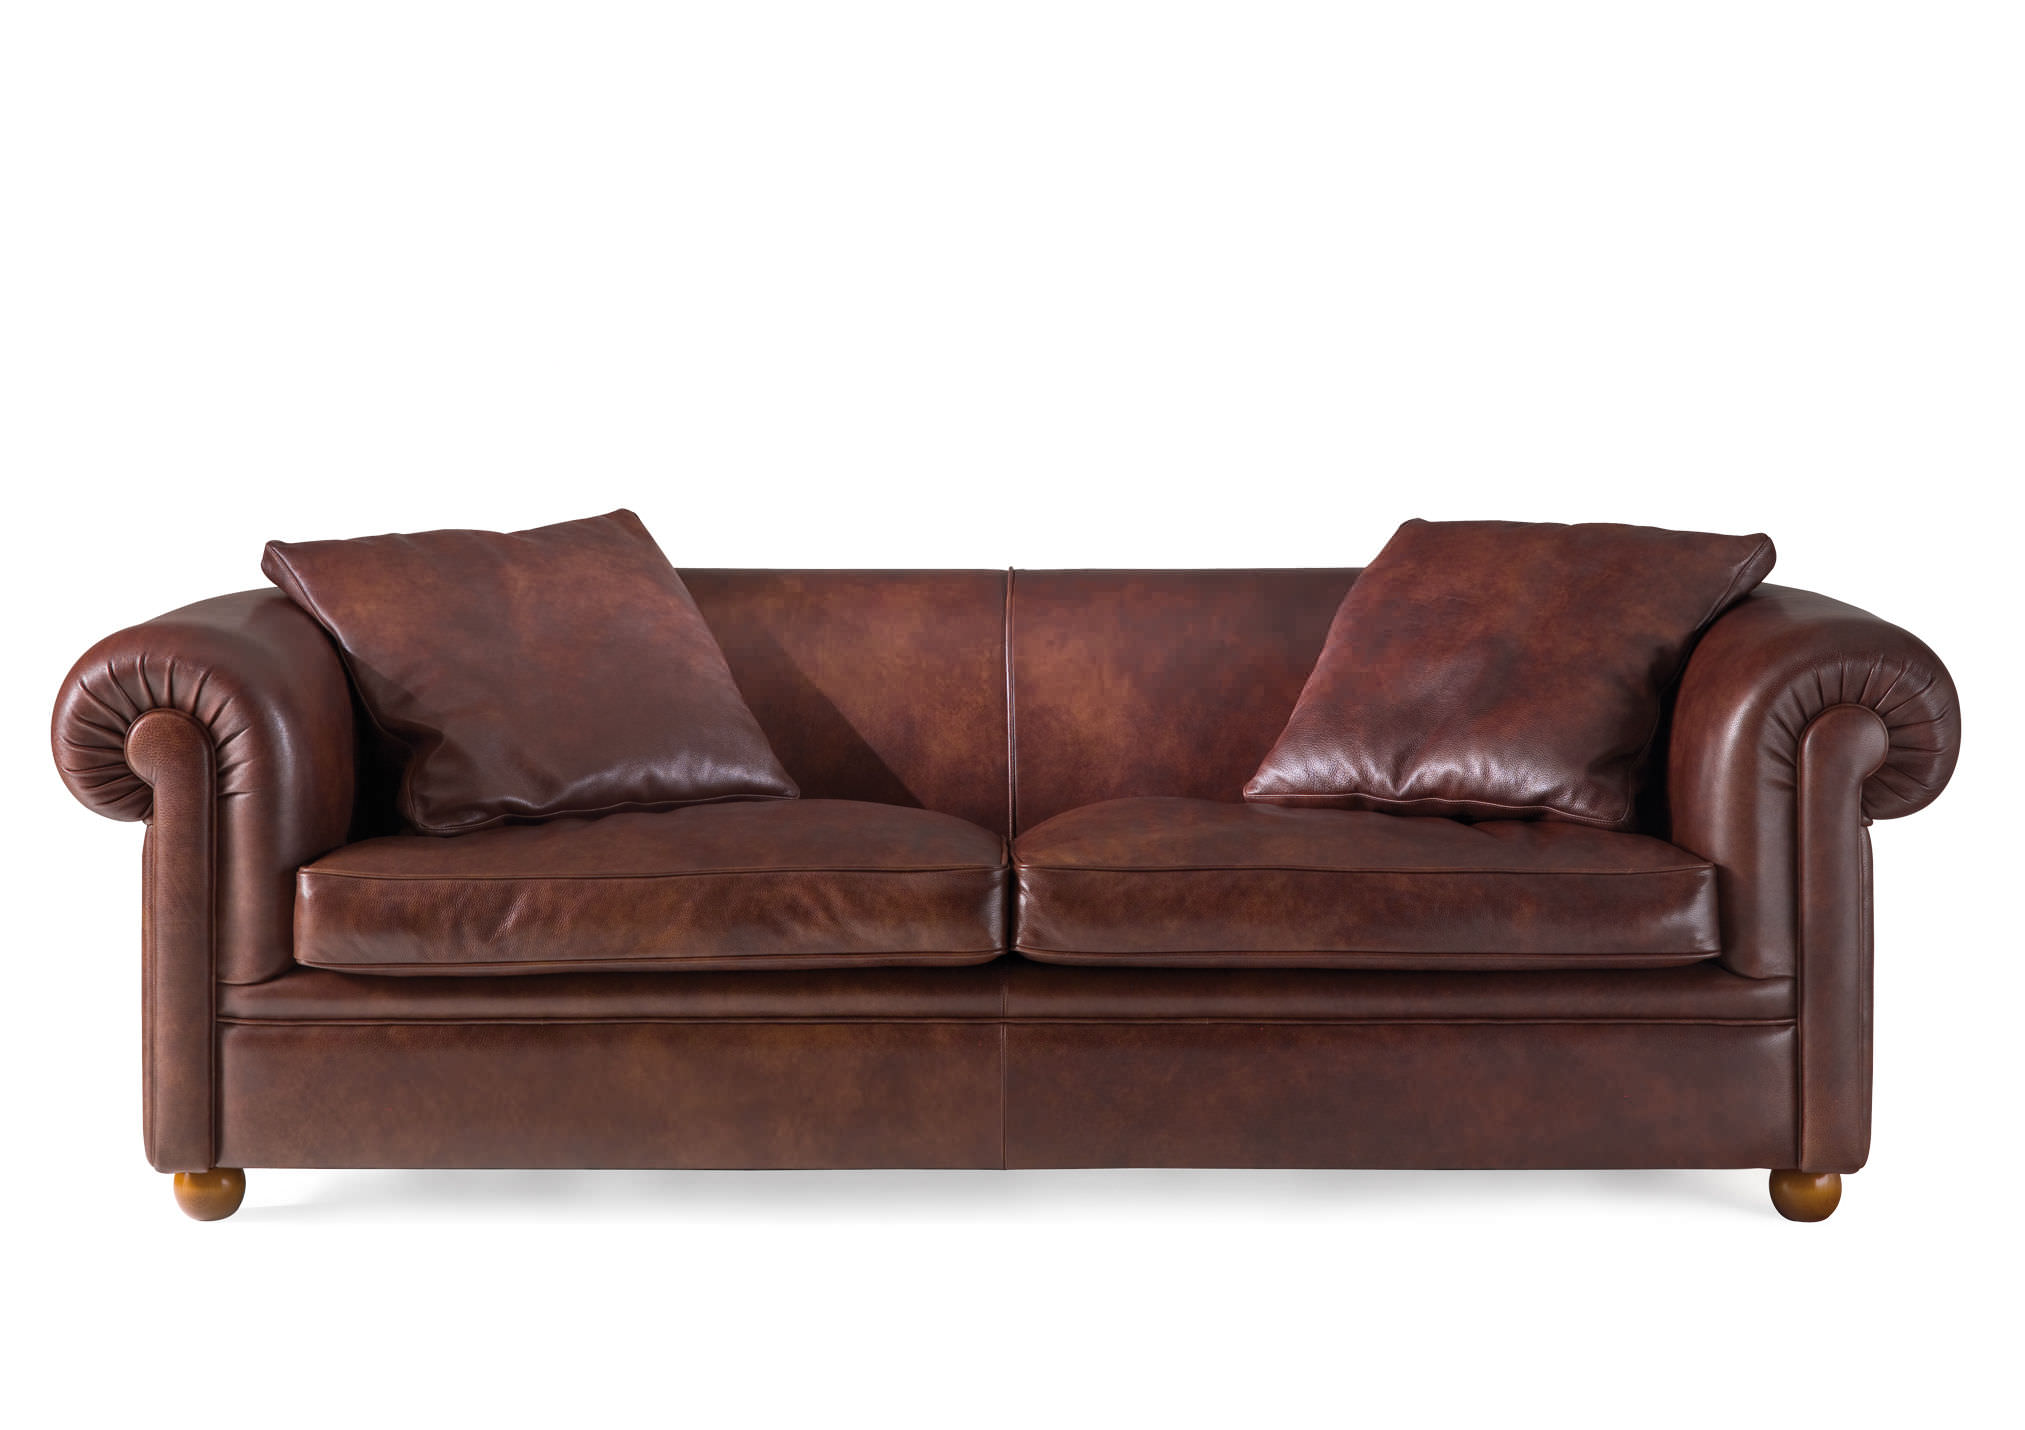 New Small Brown Leather Sofa 58 In Sofa Room Ideas with Small Brown Leather Sofa